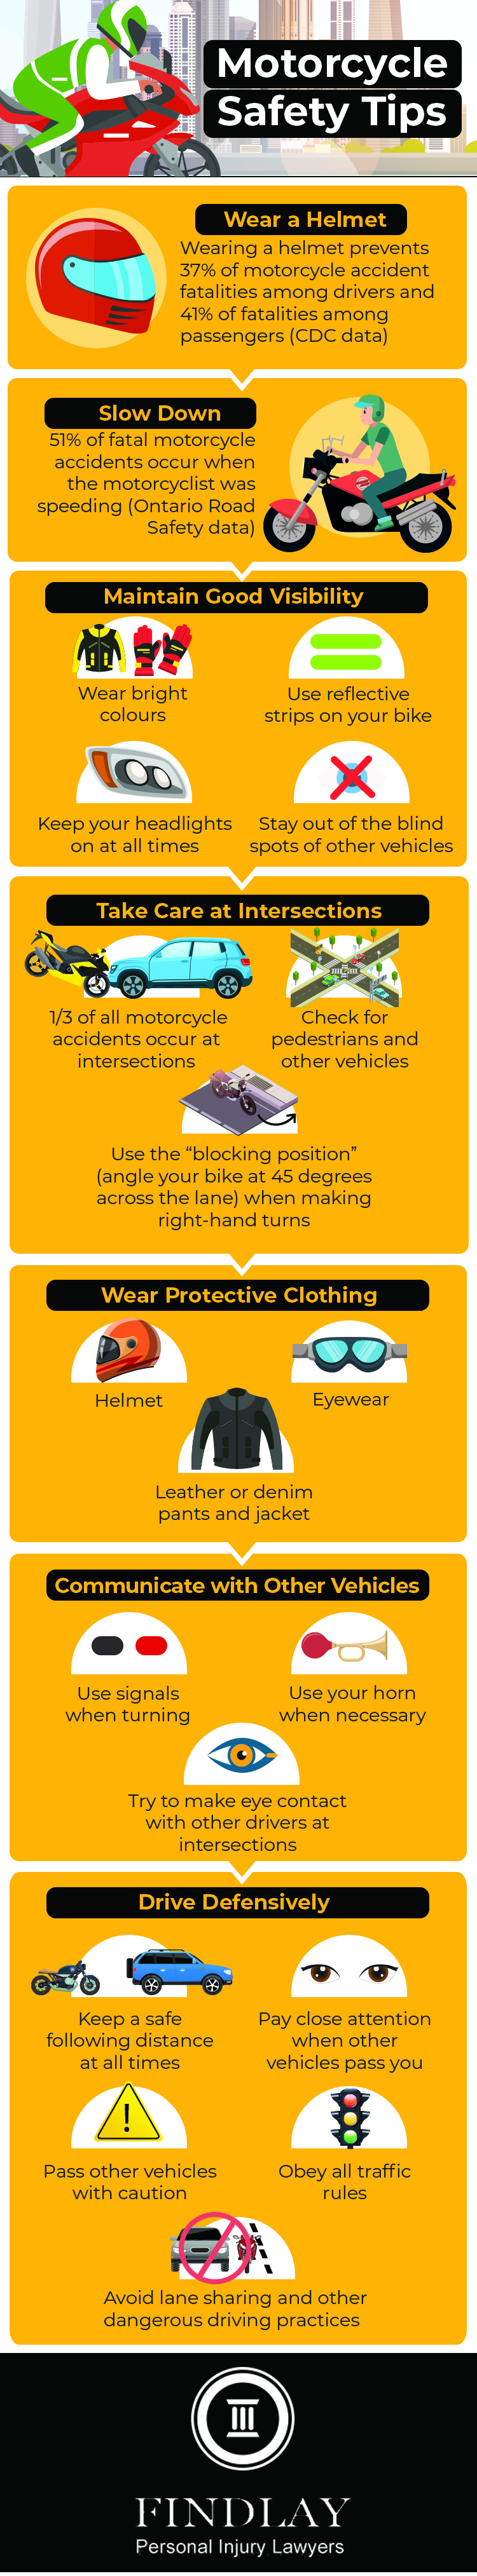 motorcycle safety tips infographic